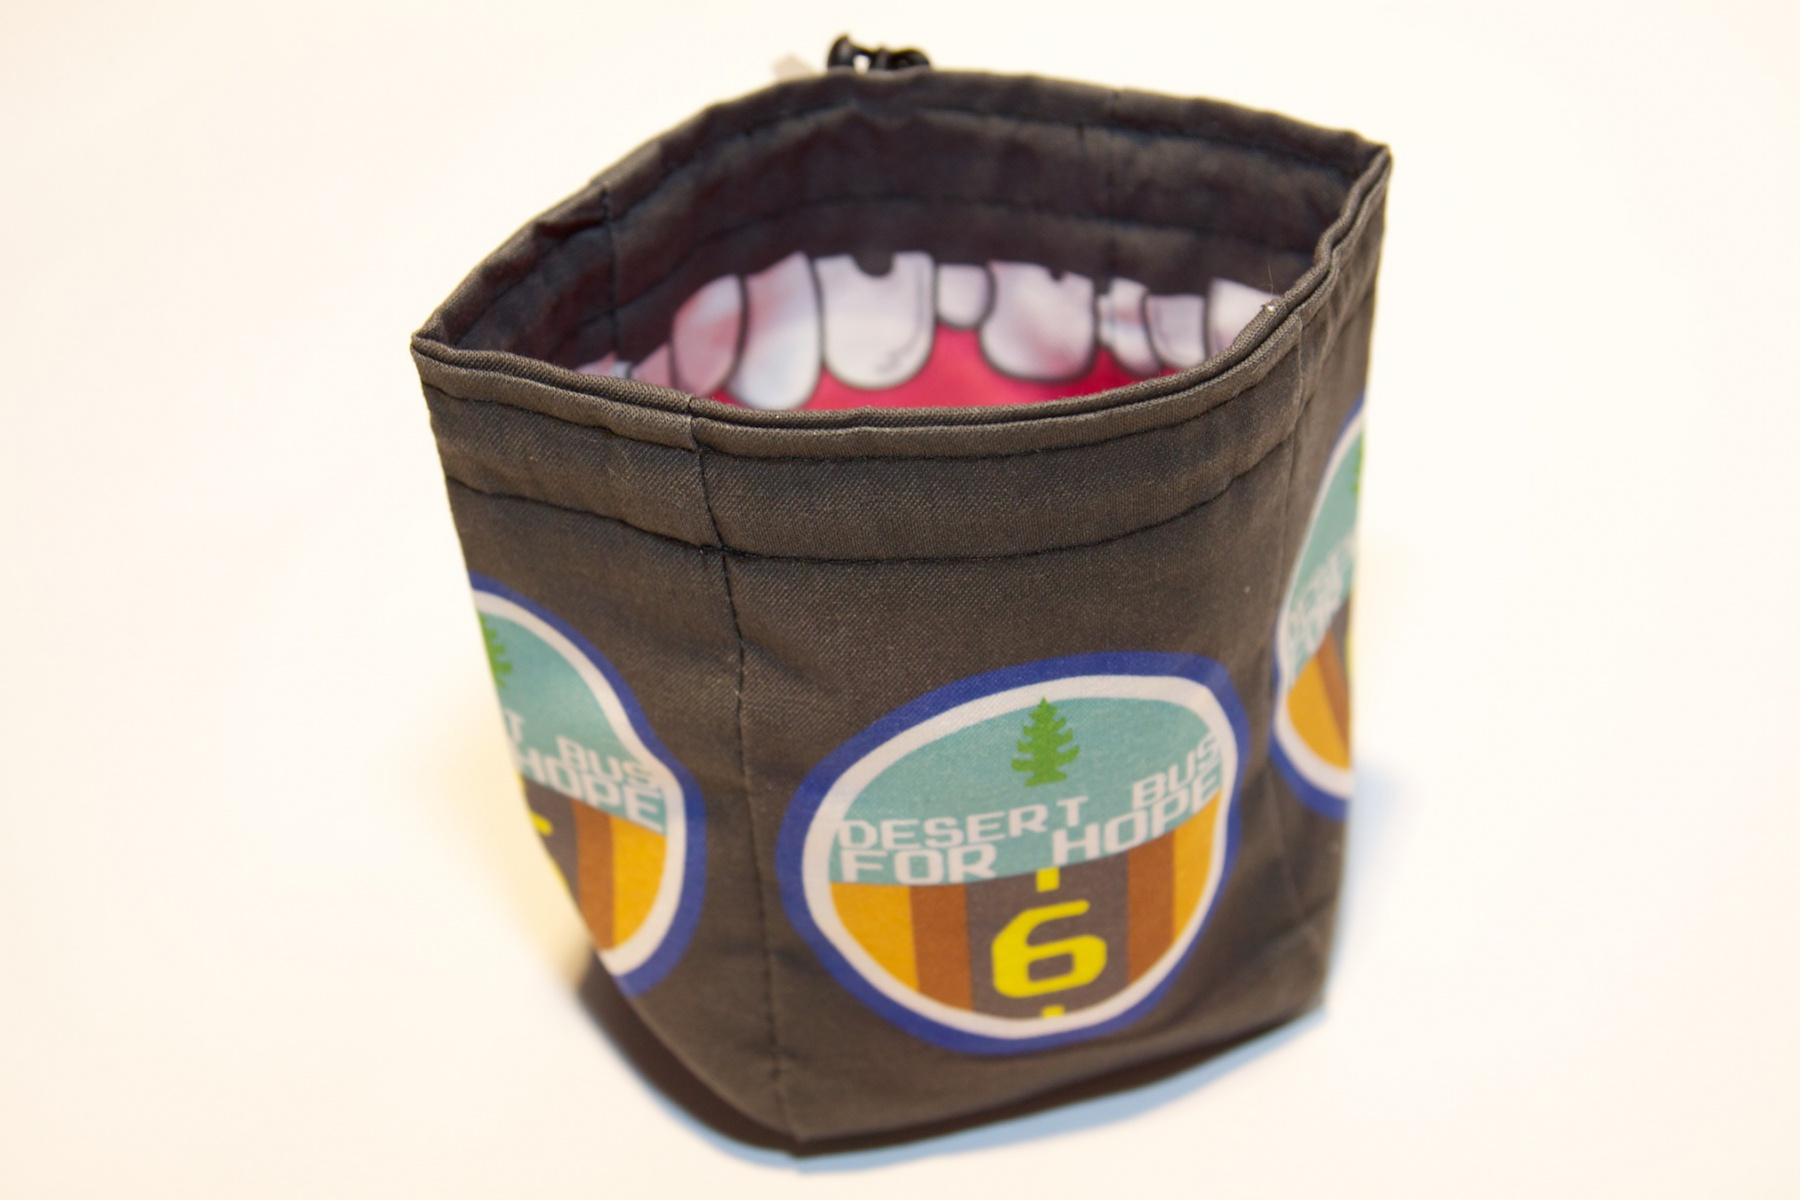 Desert Bus 6 dice bag, from Dragon Chow Dice Bags.